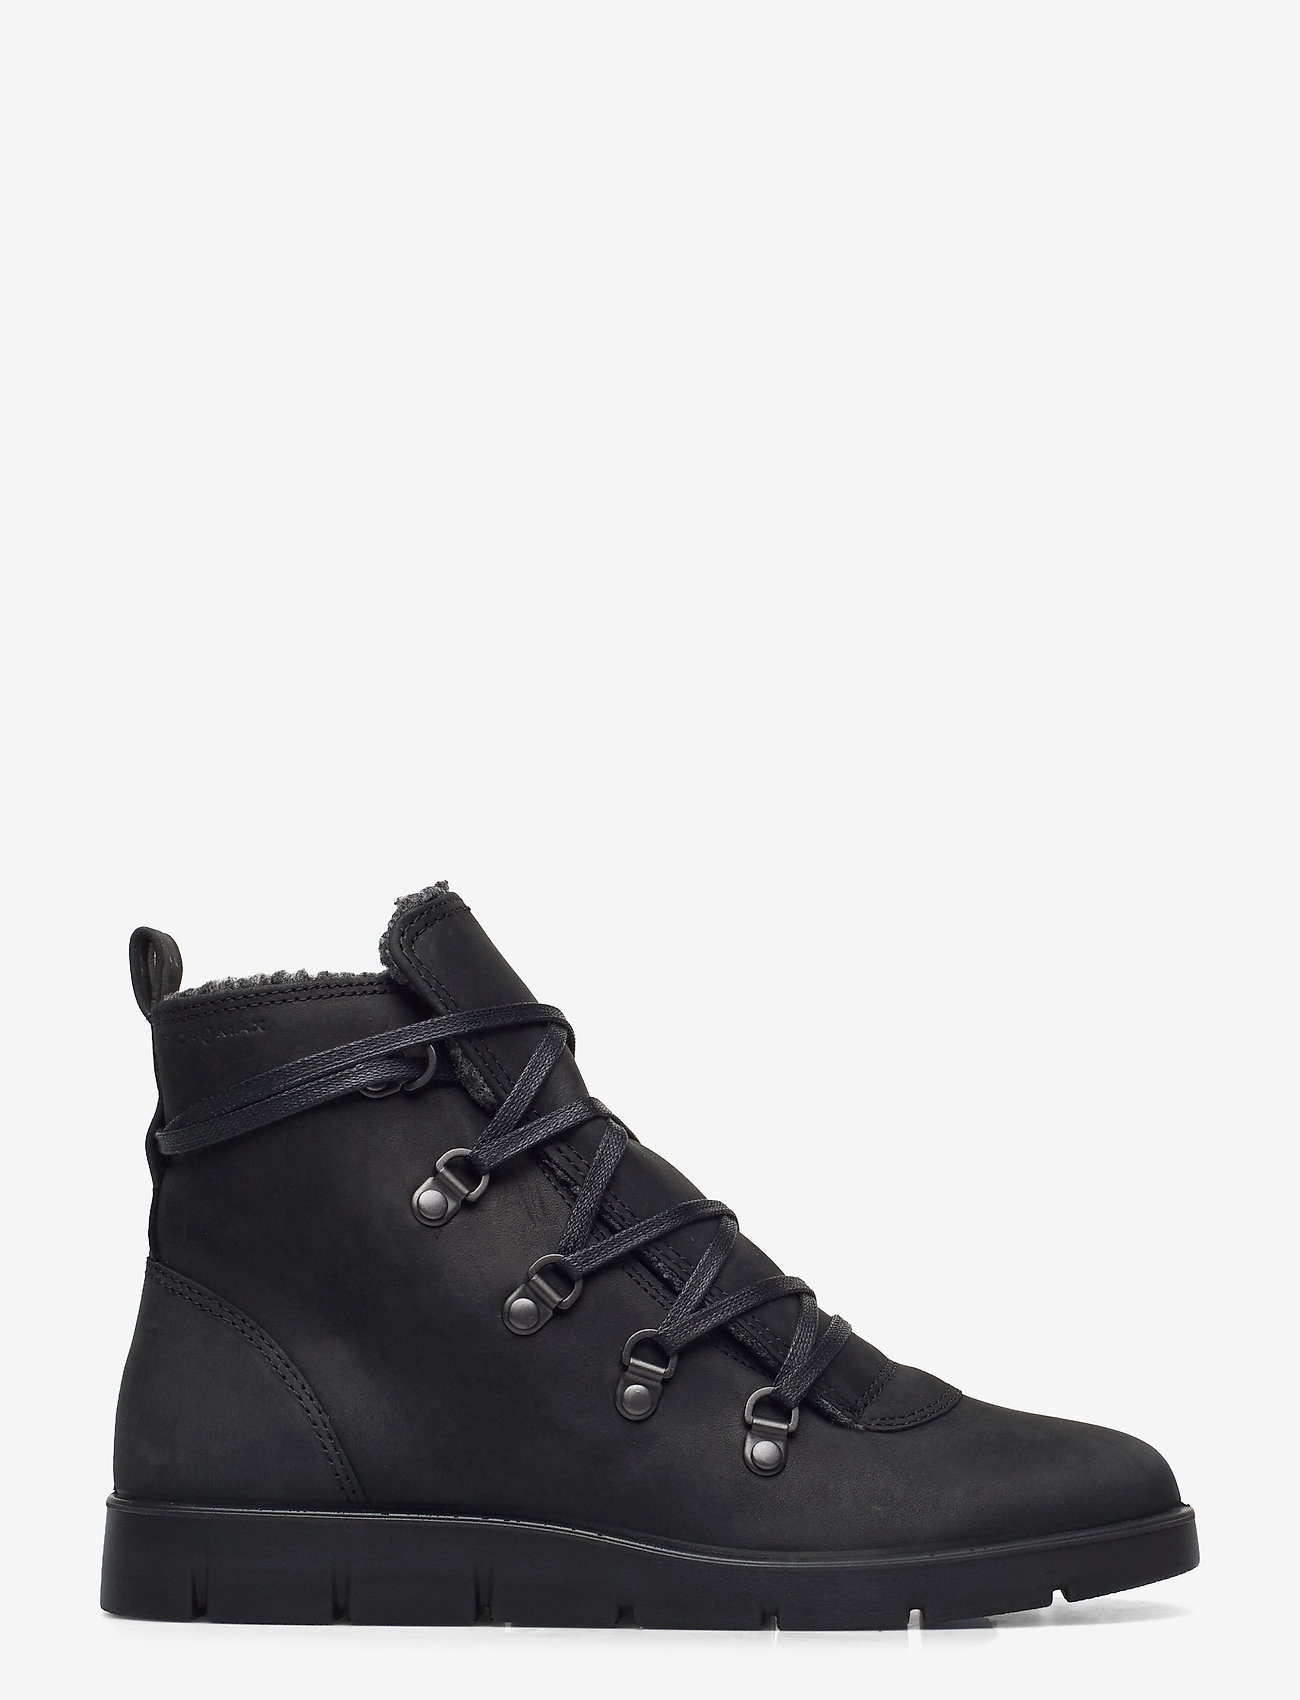 ECCO - BELLA - flat ankle boots - black - 1